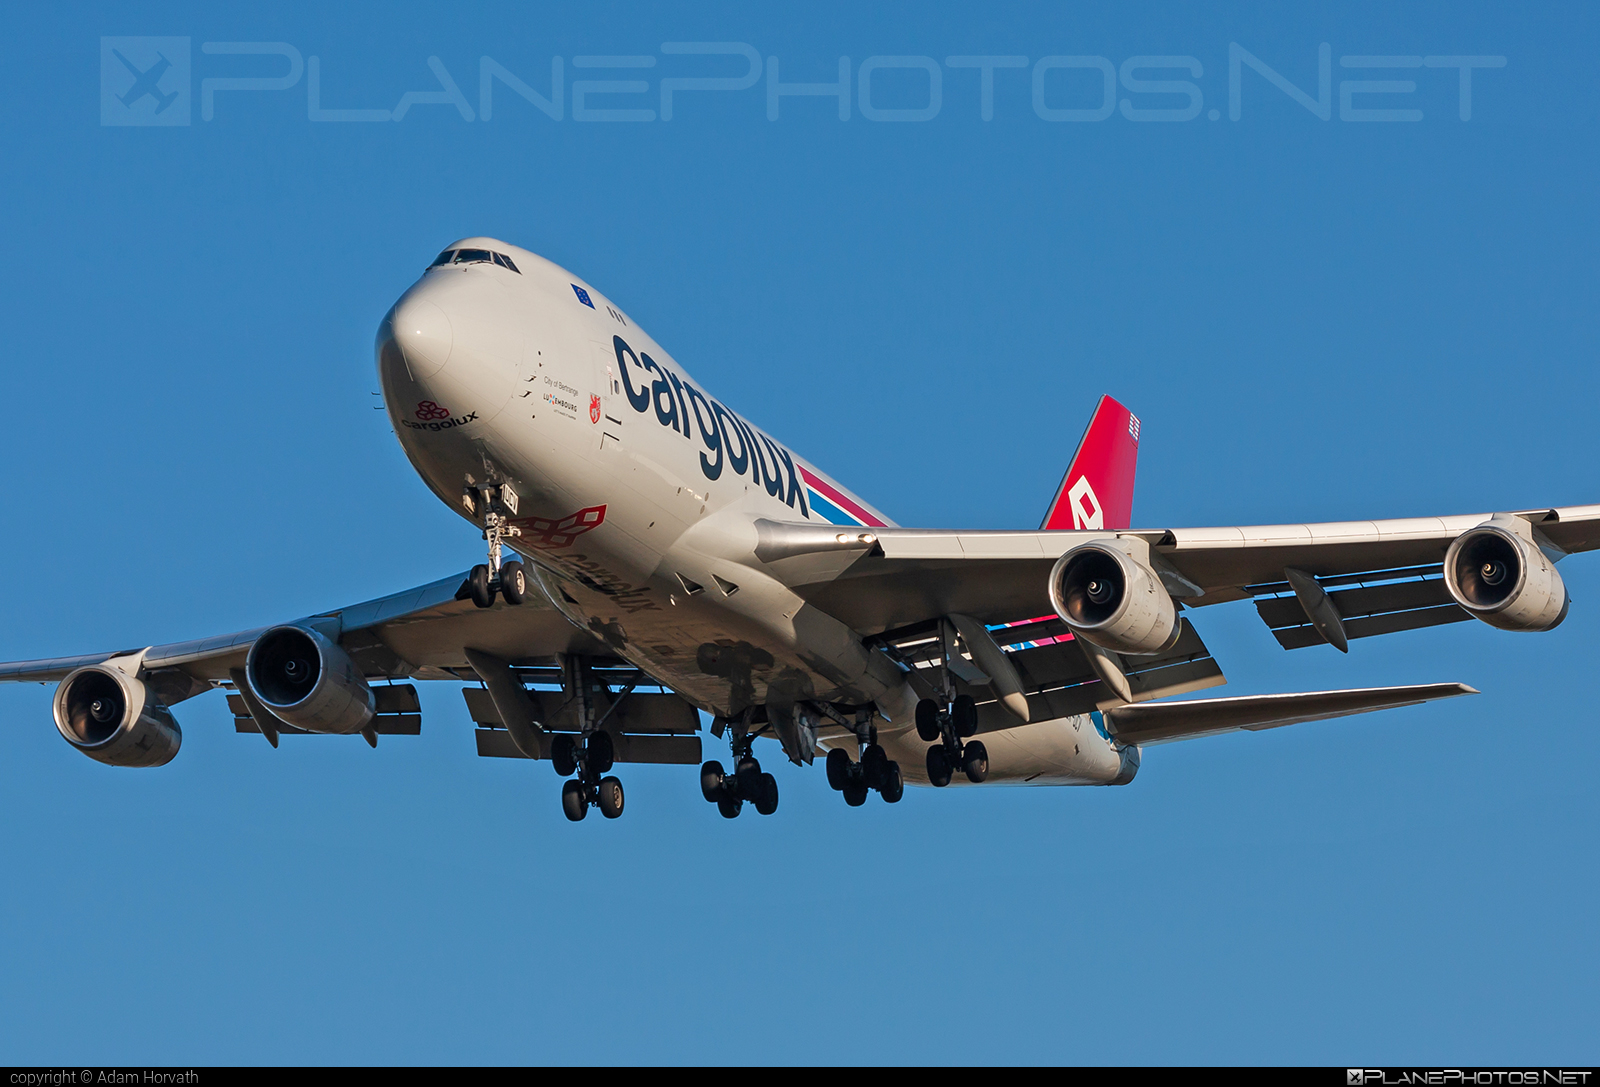 Boeing 747-400F - LX-UCV operated by Cargolux Airlines International #b747 #boeing #boeing747 #cargolux #jumbo